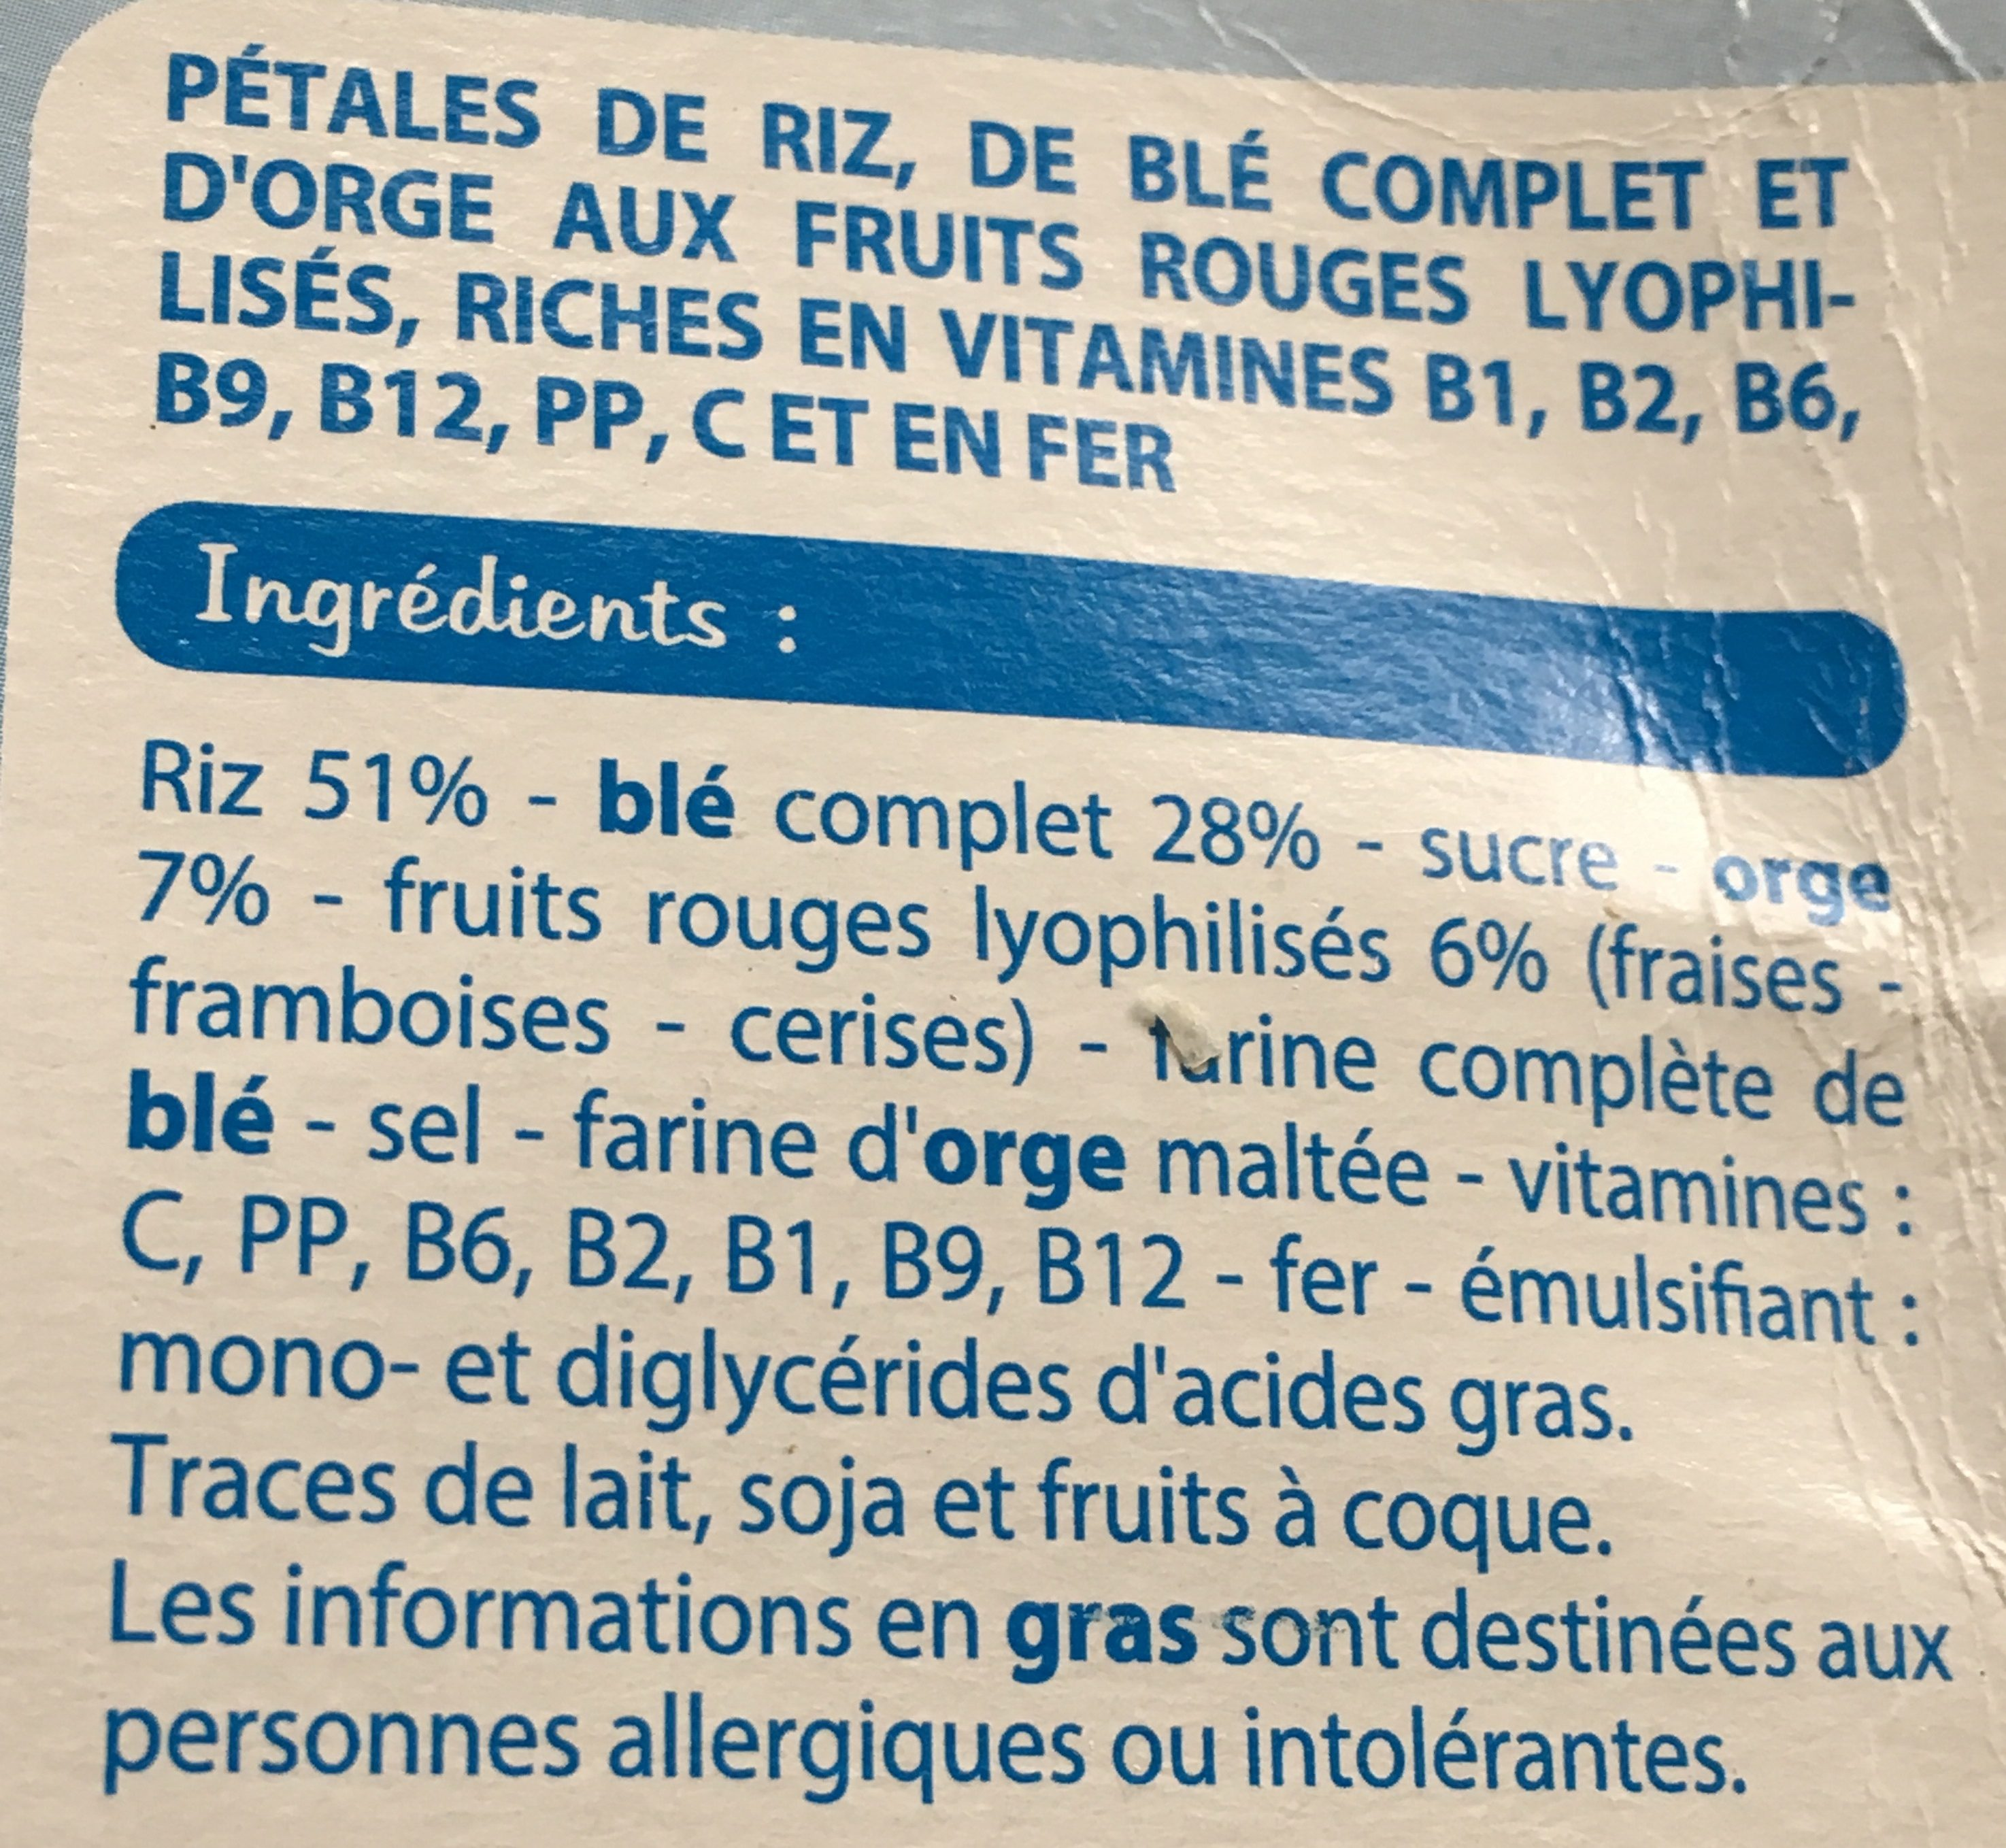 Riz et blé complet fruits rouges - Ingredients - fr